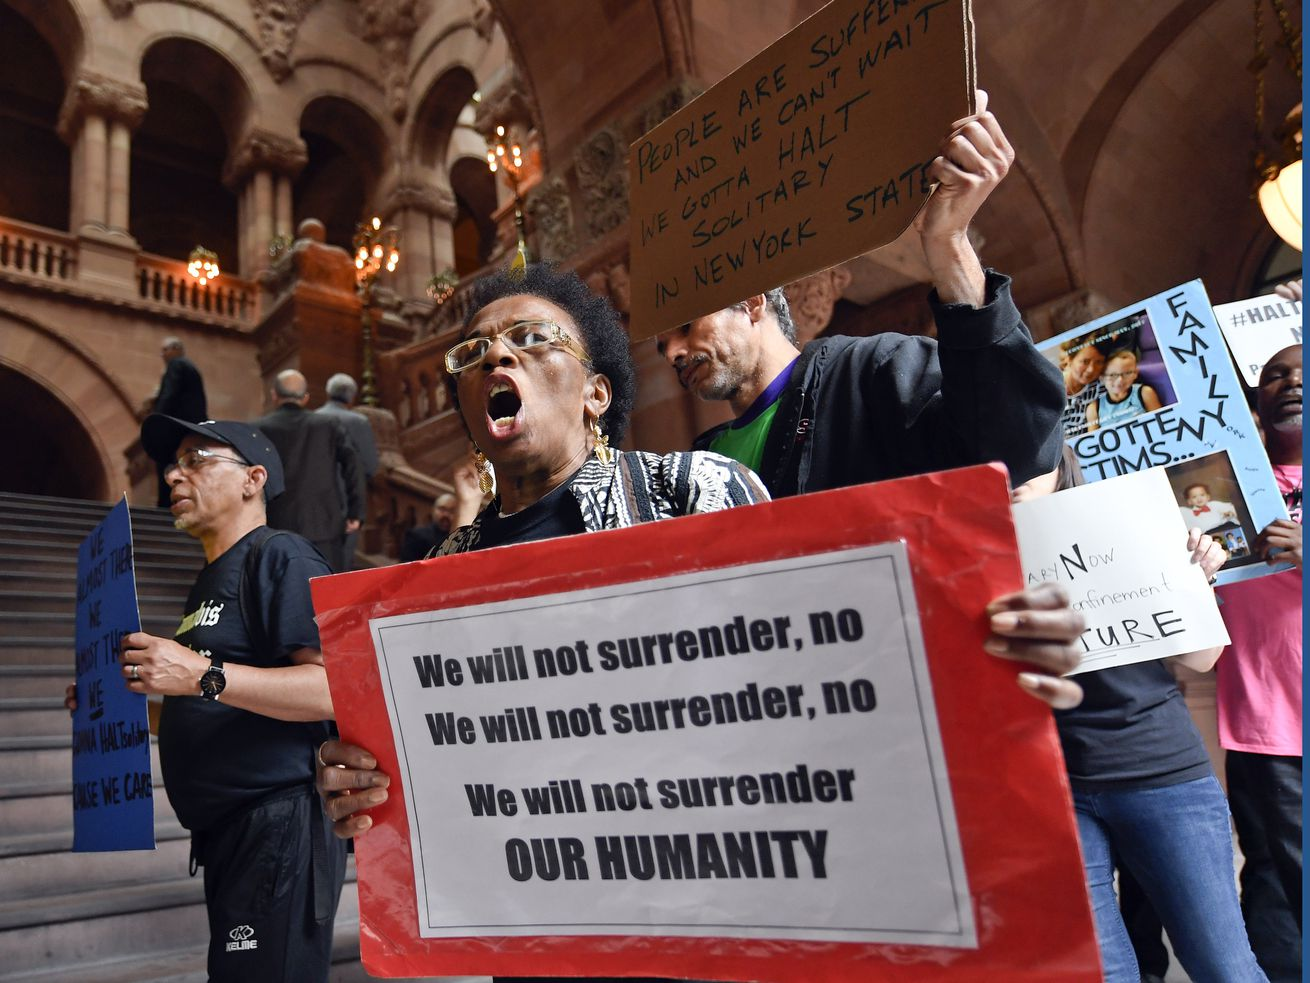 Protestors march against solitary confinement in New York, where lawmakers tried to introduce a law that would restrict the practice — similar to the one that was passed in New Jersey.